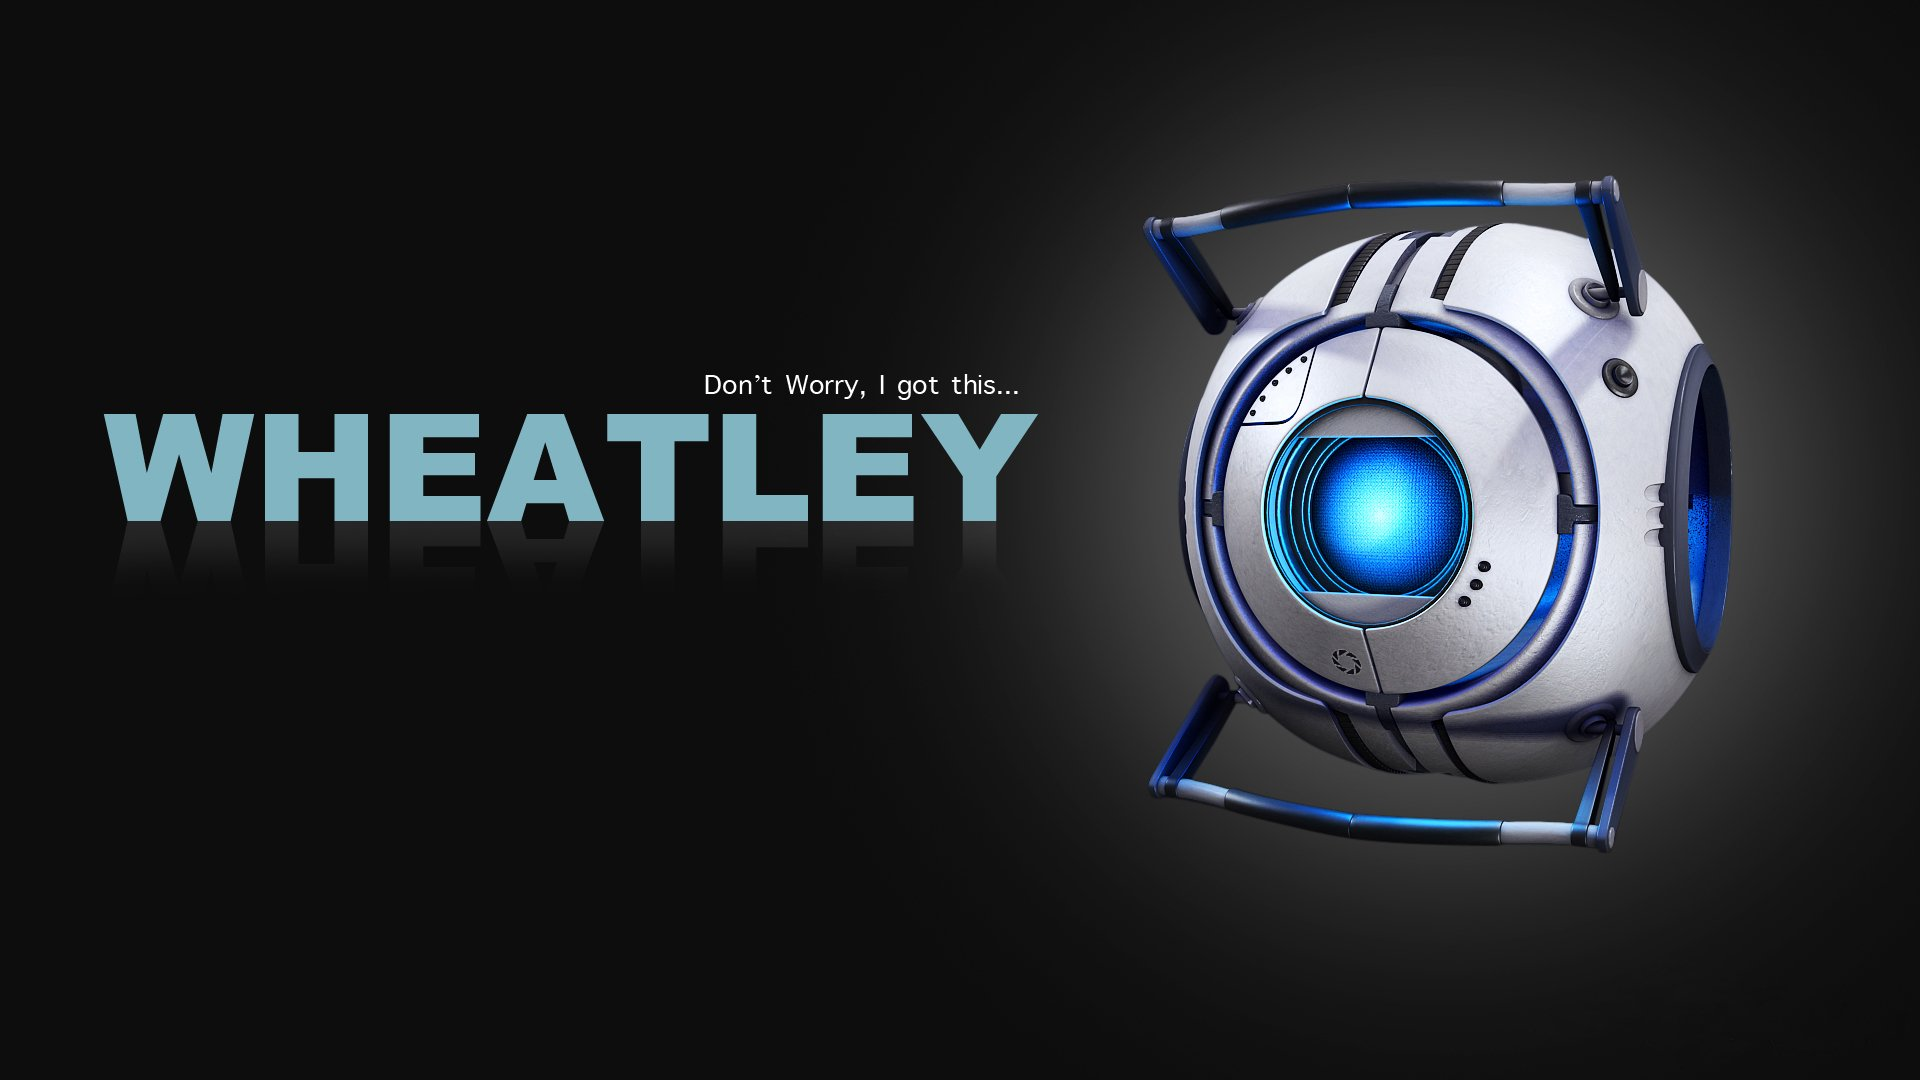 Portal 2 Wheatley wallpaper   ForWallpapercom 1920x1080